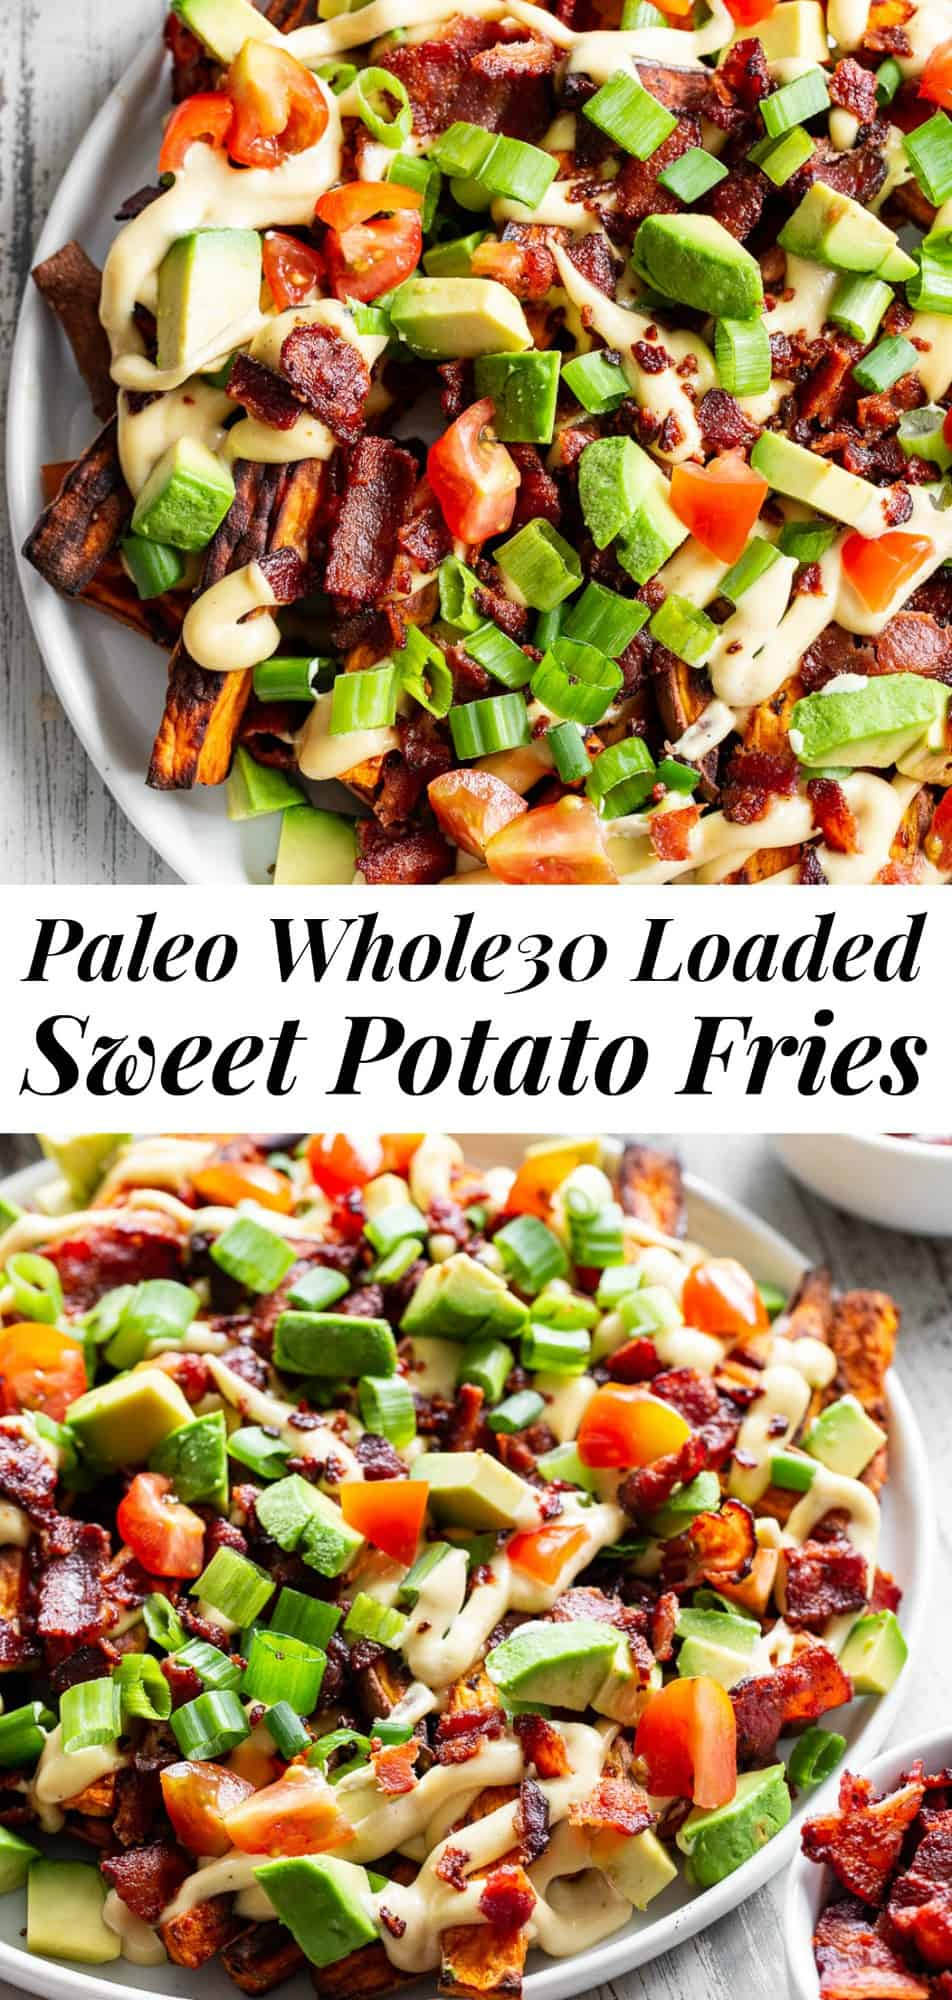 These loaded sweet potato fries are easy to make and packed with goodies! Sweet potato fries are baked crispy and topped with plenty of No Sugar Hickory Smoked Bacon from @jonesdairyfarm, dairy-free cheese sauce, green onions, avocado and tomatoes. This fun meal or appetizer is kid approved, paleo, Whole30 compliant and seriously tasty! #Whole30 #paleo #cleaneating #AD